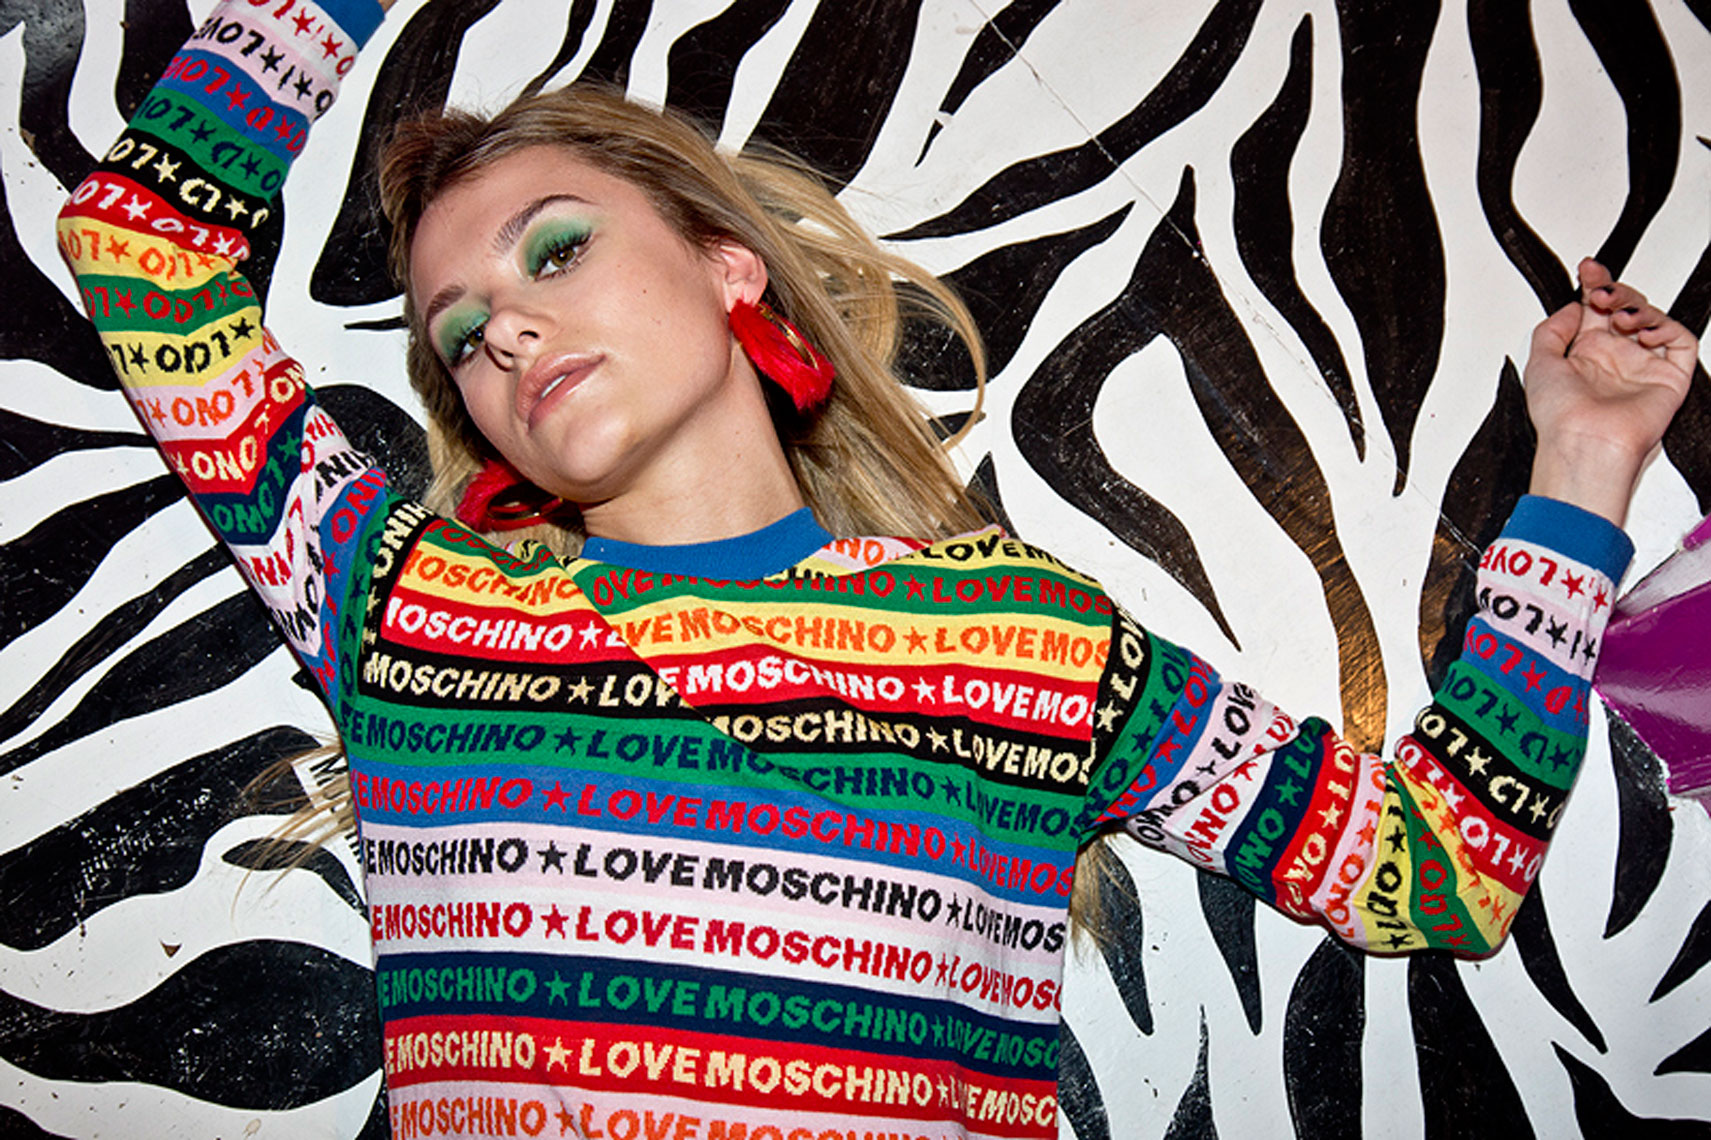 issie-gibbons-fashion-stylist-love-moschino-zebra